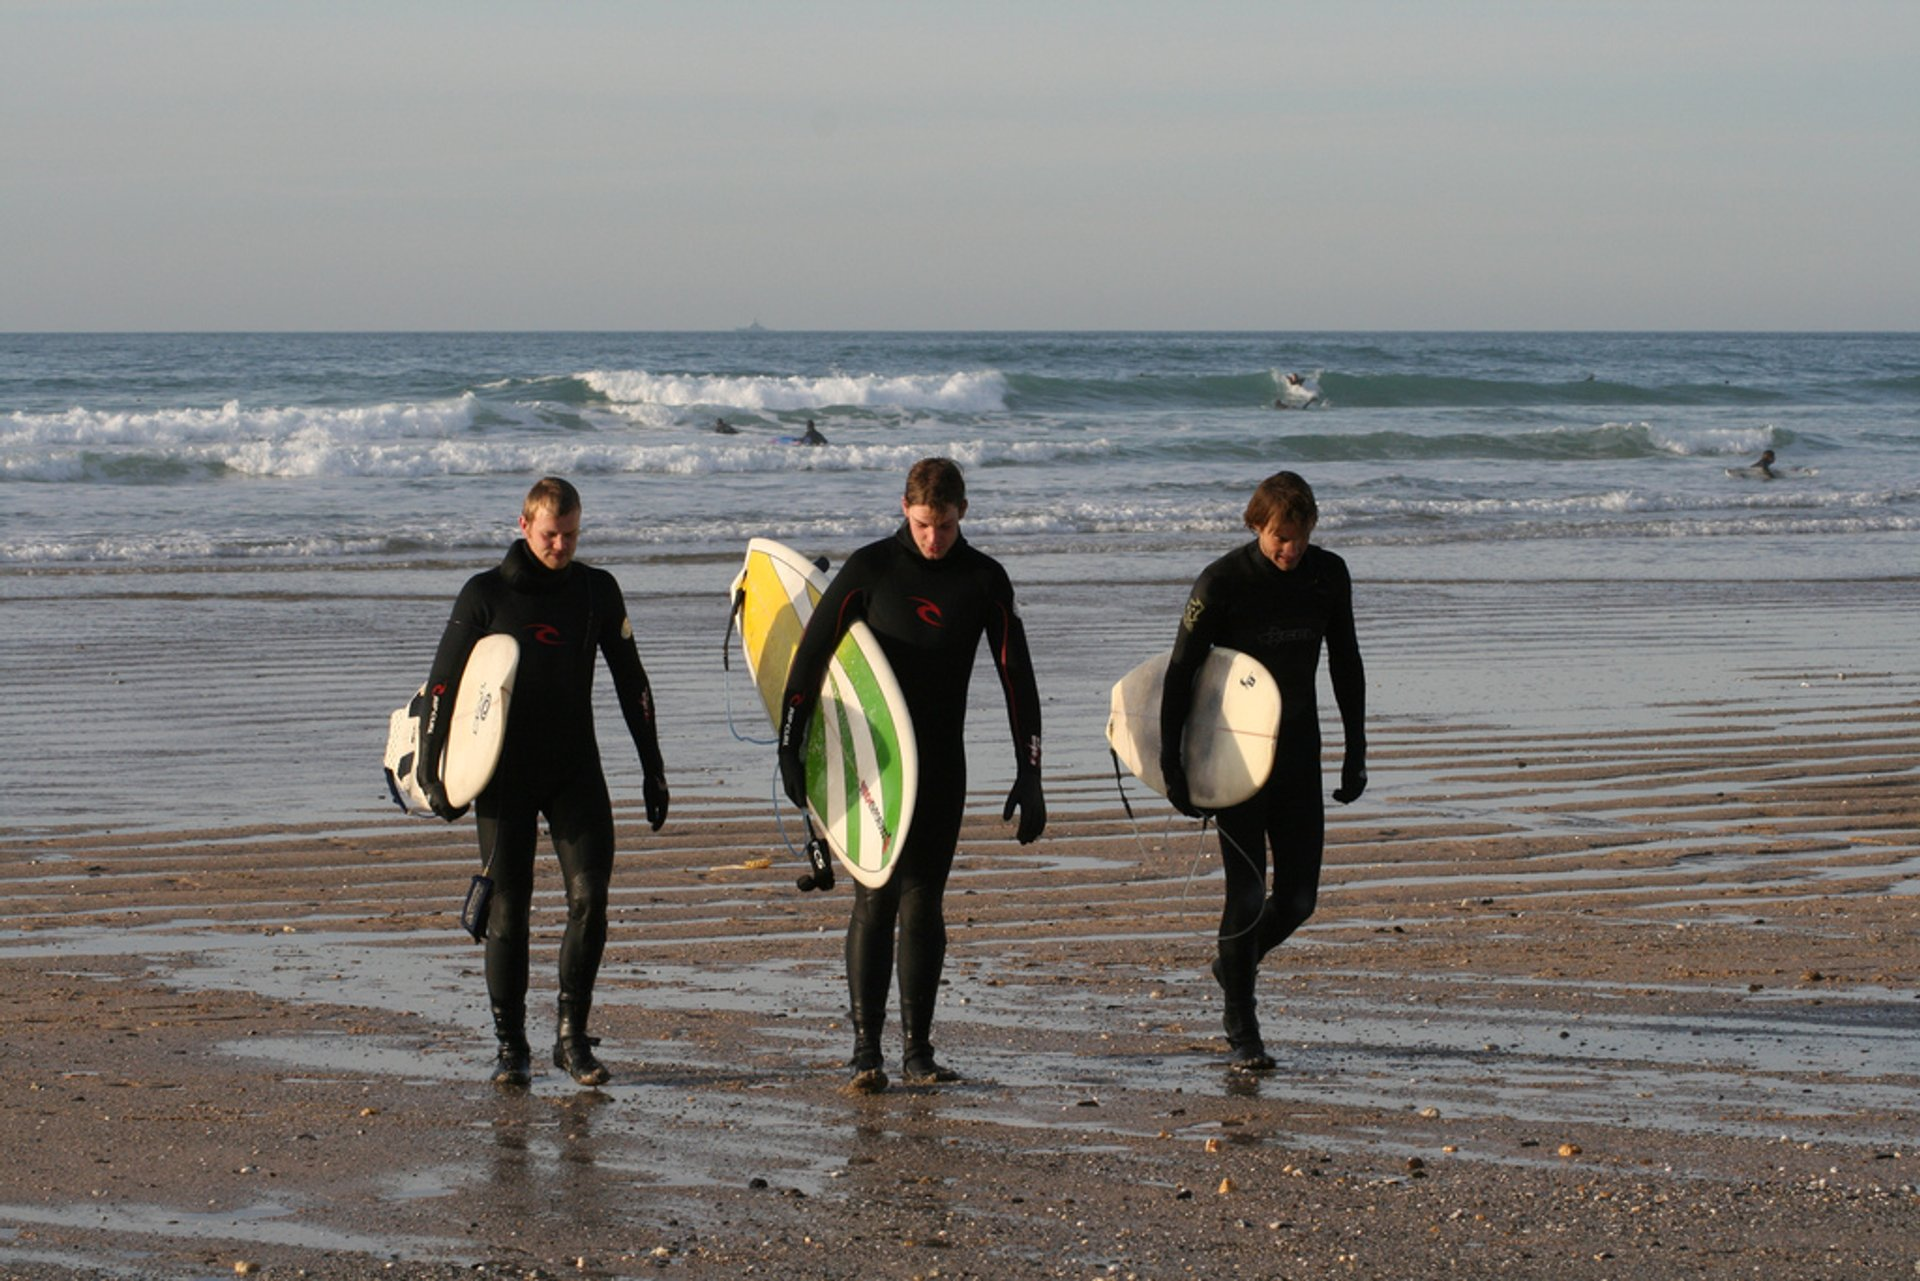 Surfing in Newquay 2020